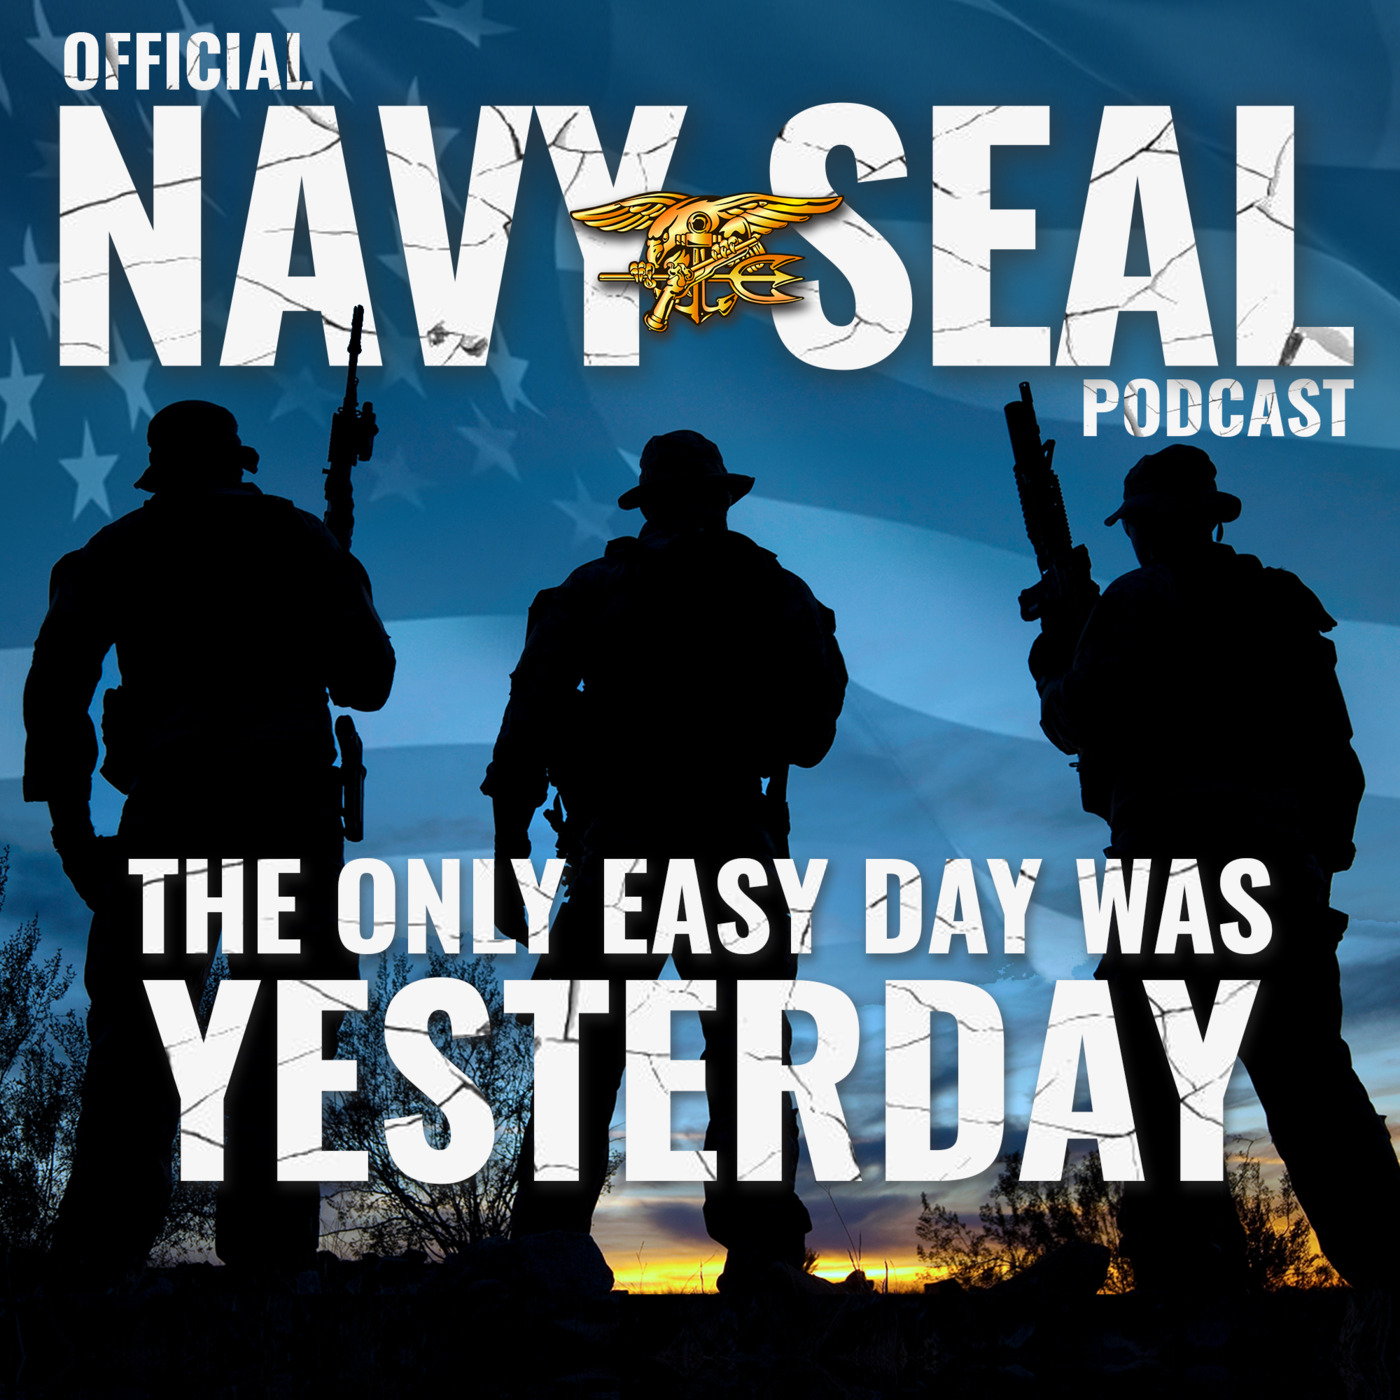 The Official Navy SEAL Podcast | Listen to the Most Popular Podcasts